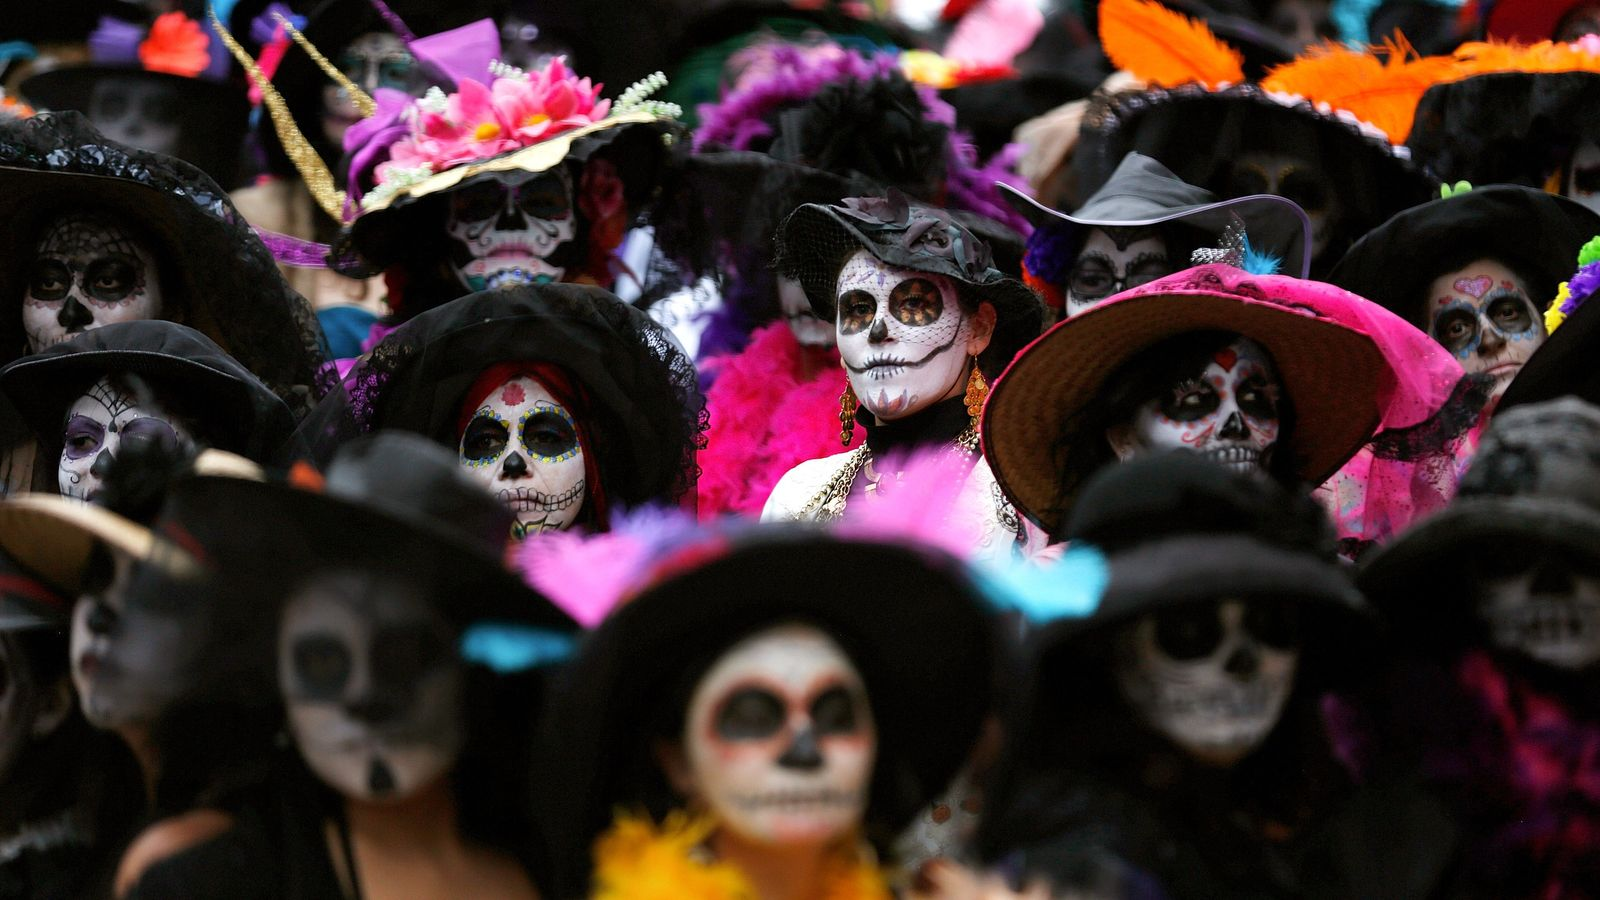 Over 500 woman gathered in Mexico City on November 1, 2014, to set a Guiness World ...